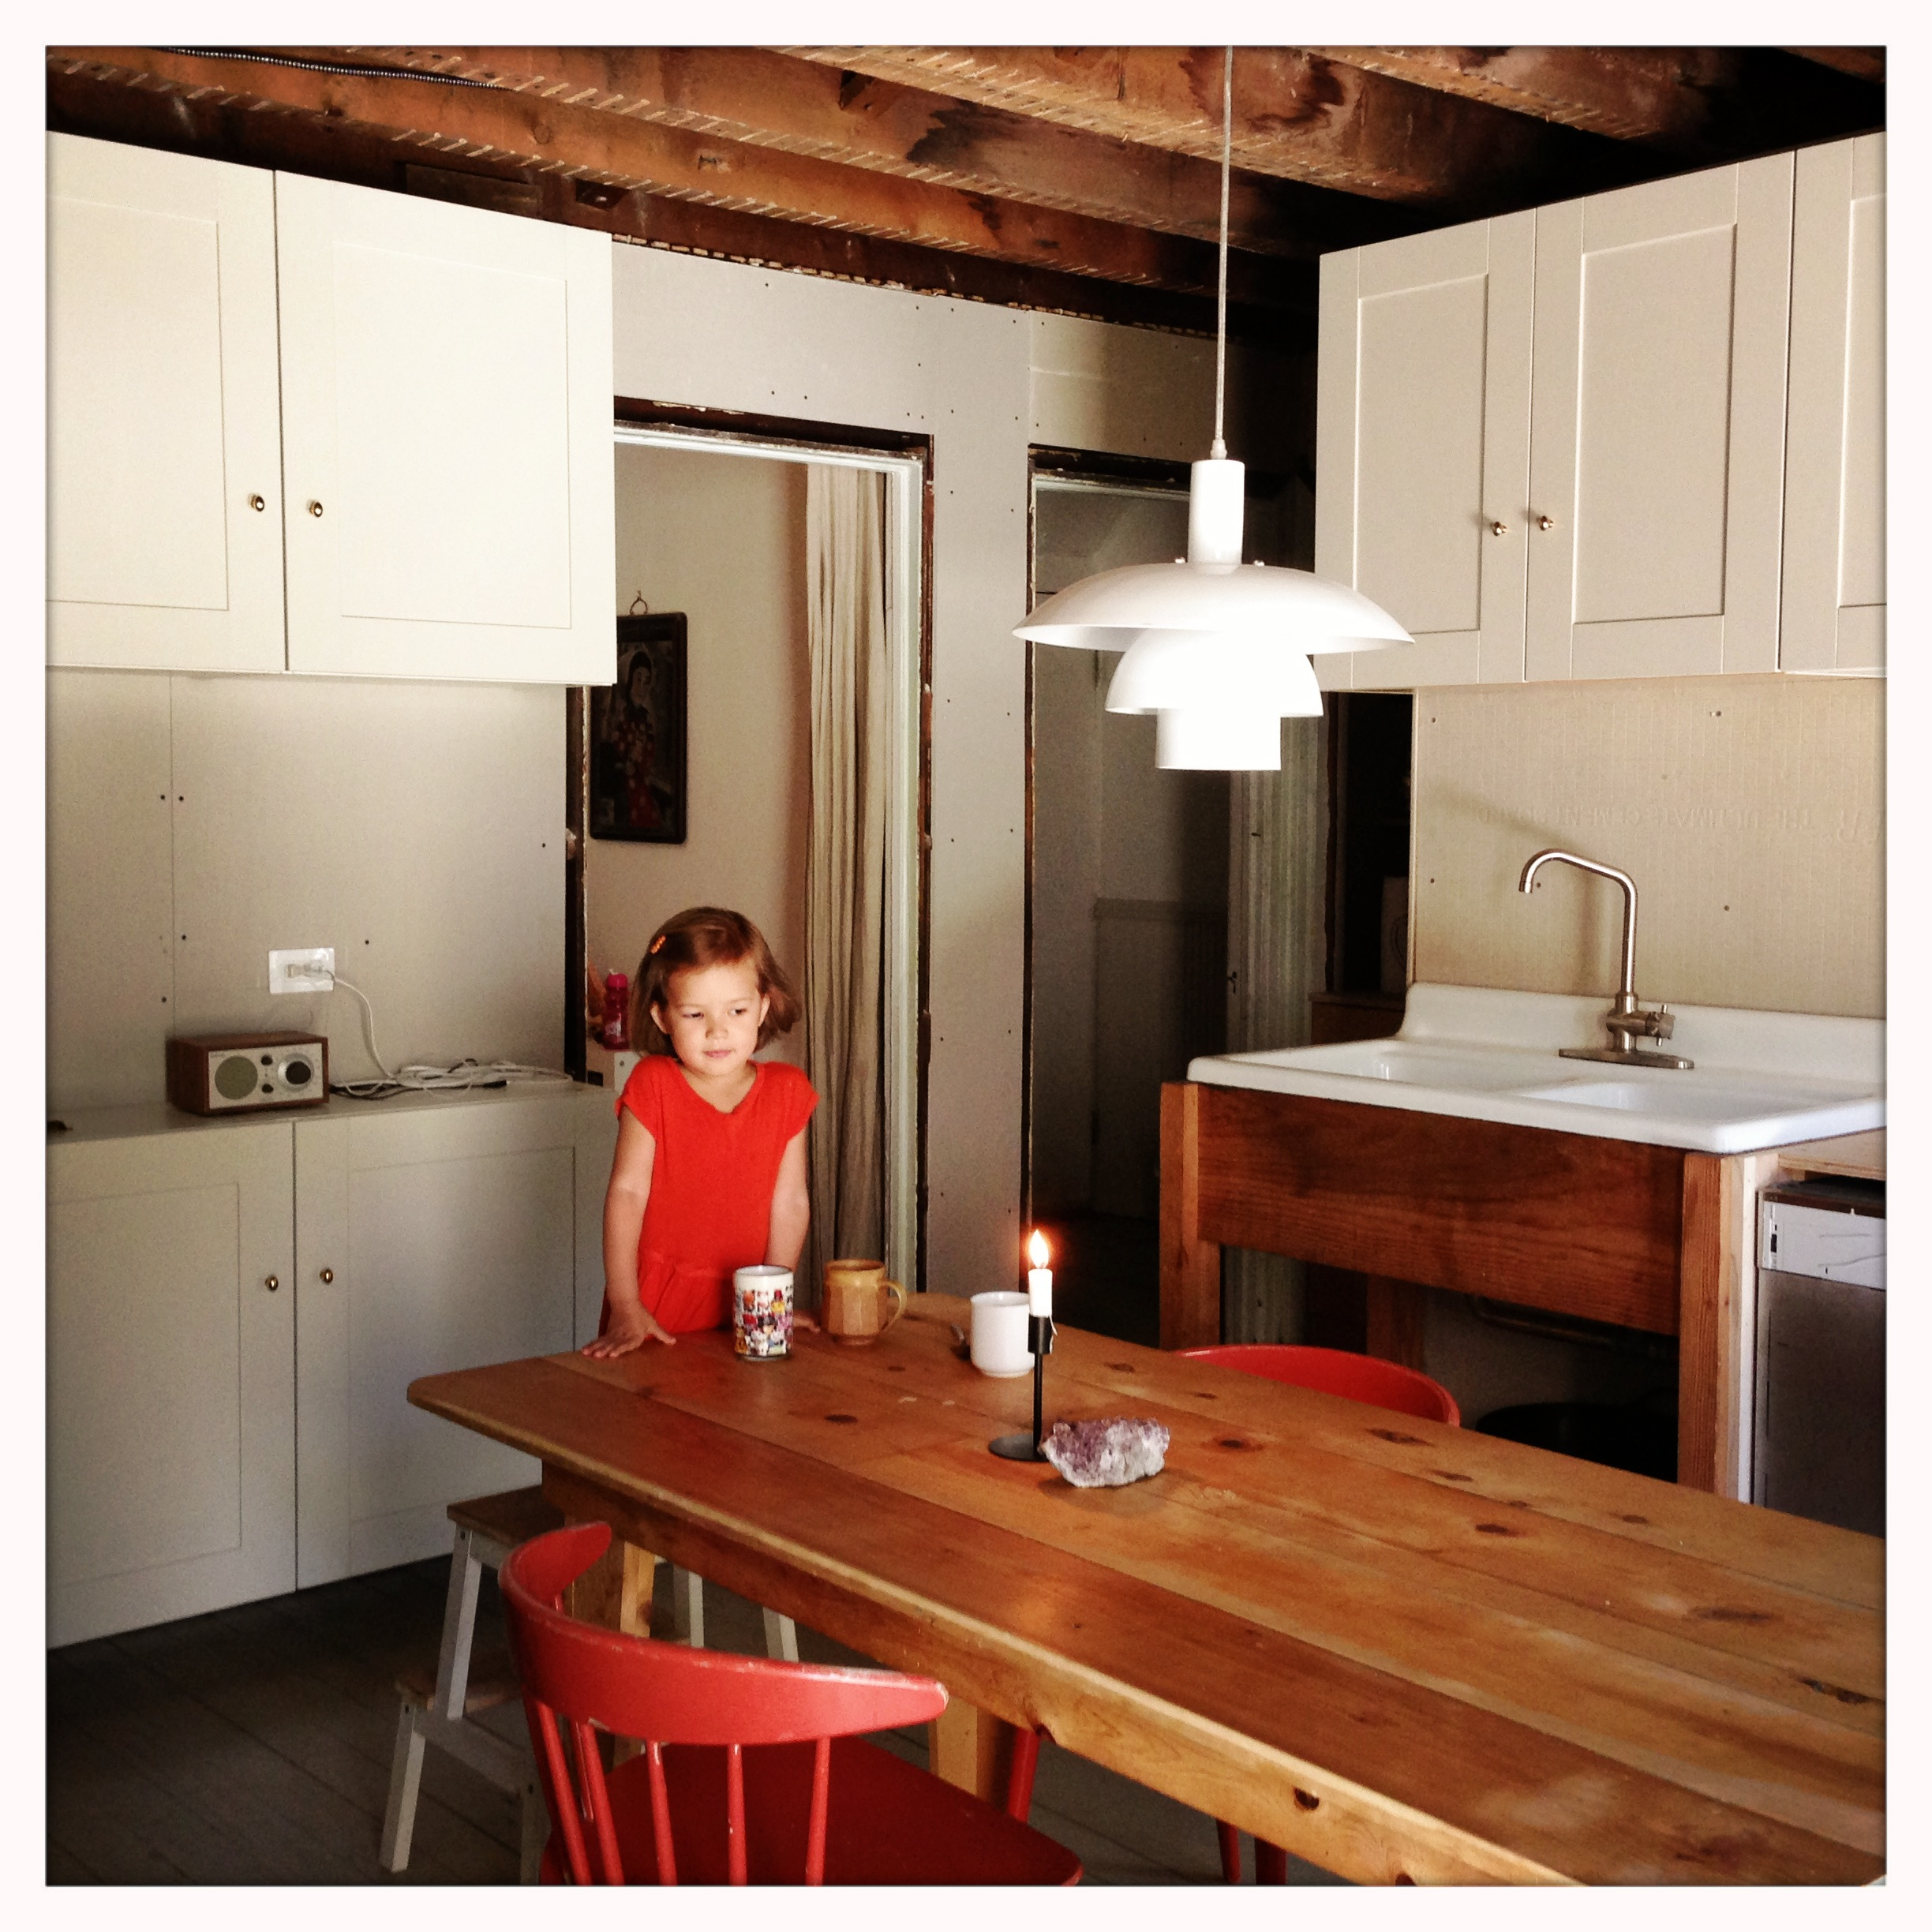 How To Paint Kitchen Cabinets Without Streaks Painting Kitchen Cabinet Doors This Old Crack House